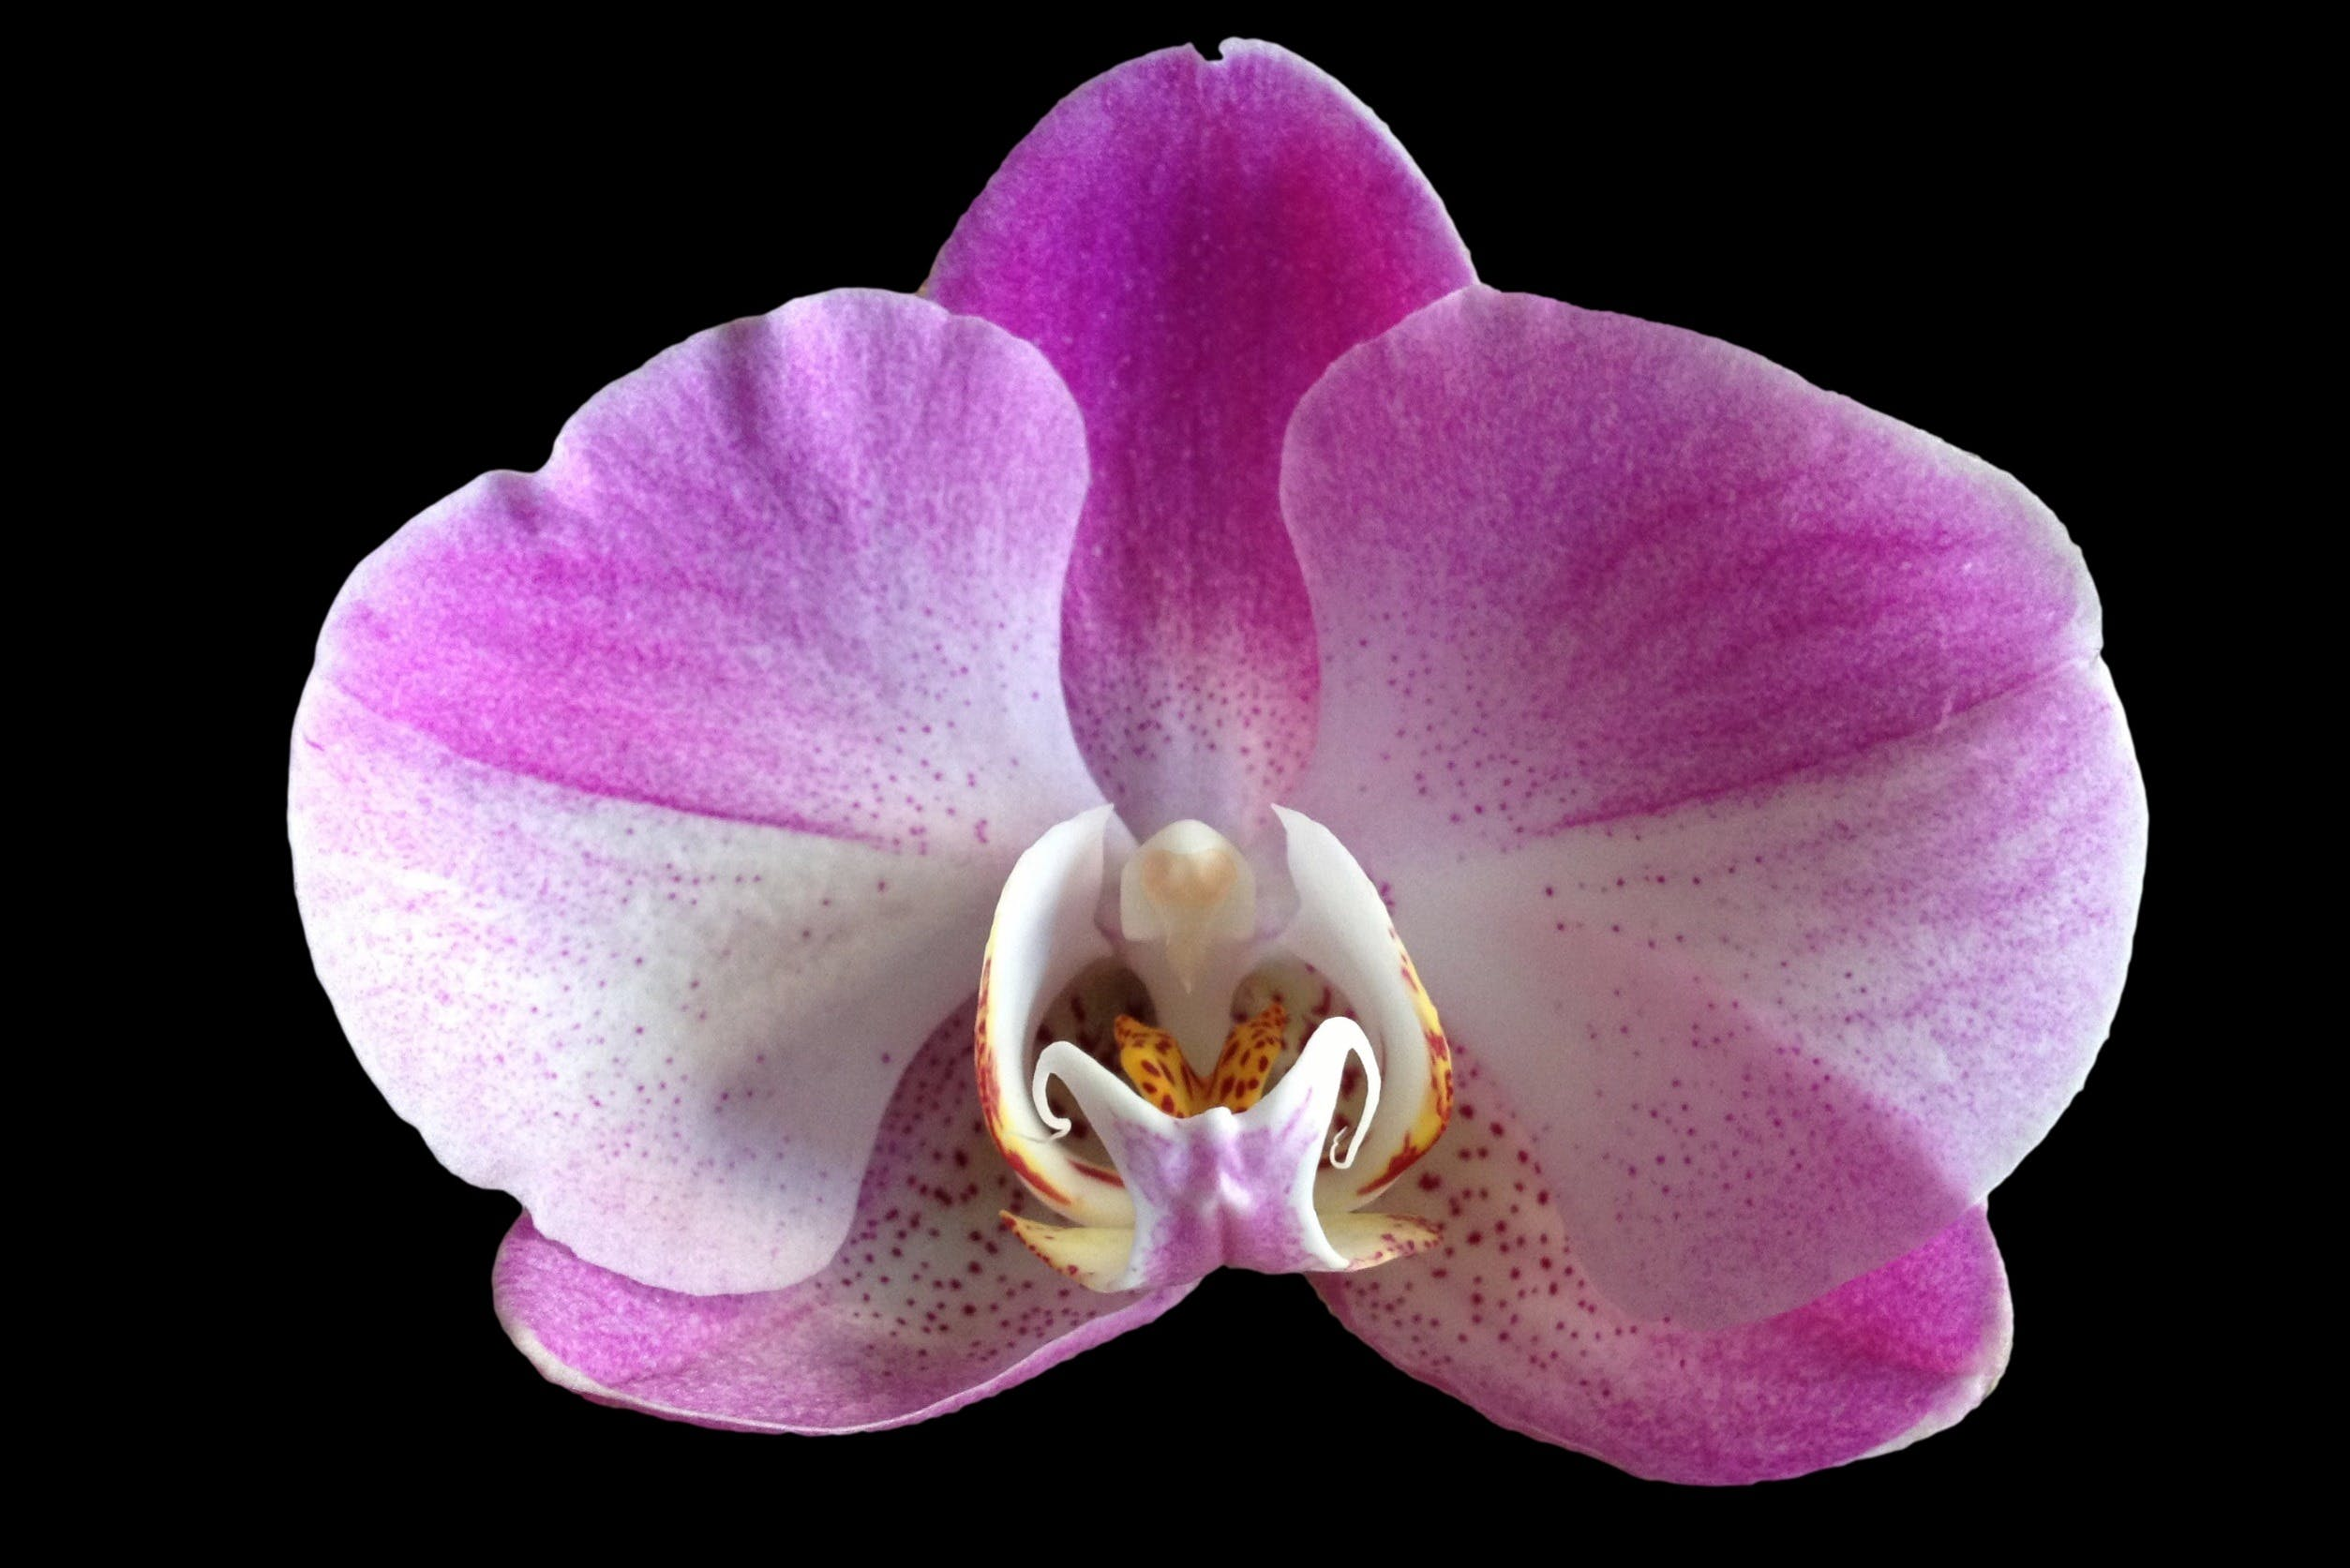 Purple and White Orchid Flower